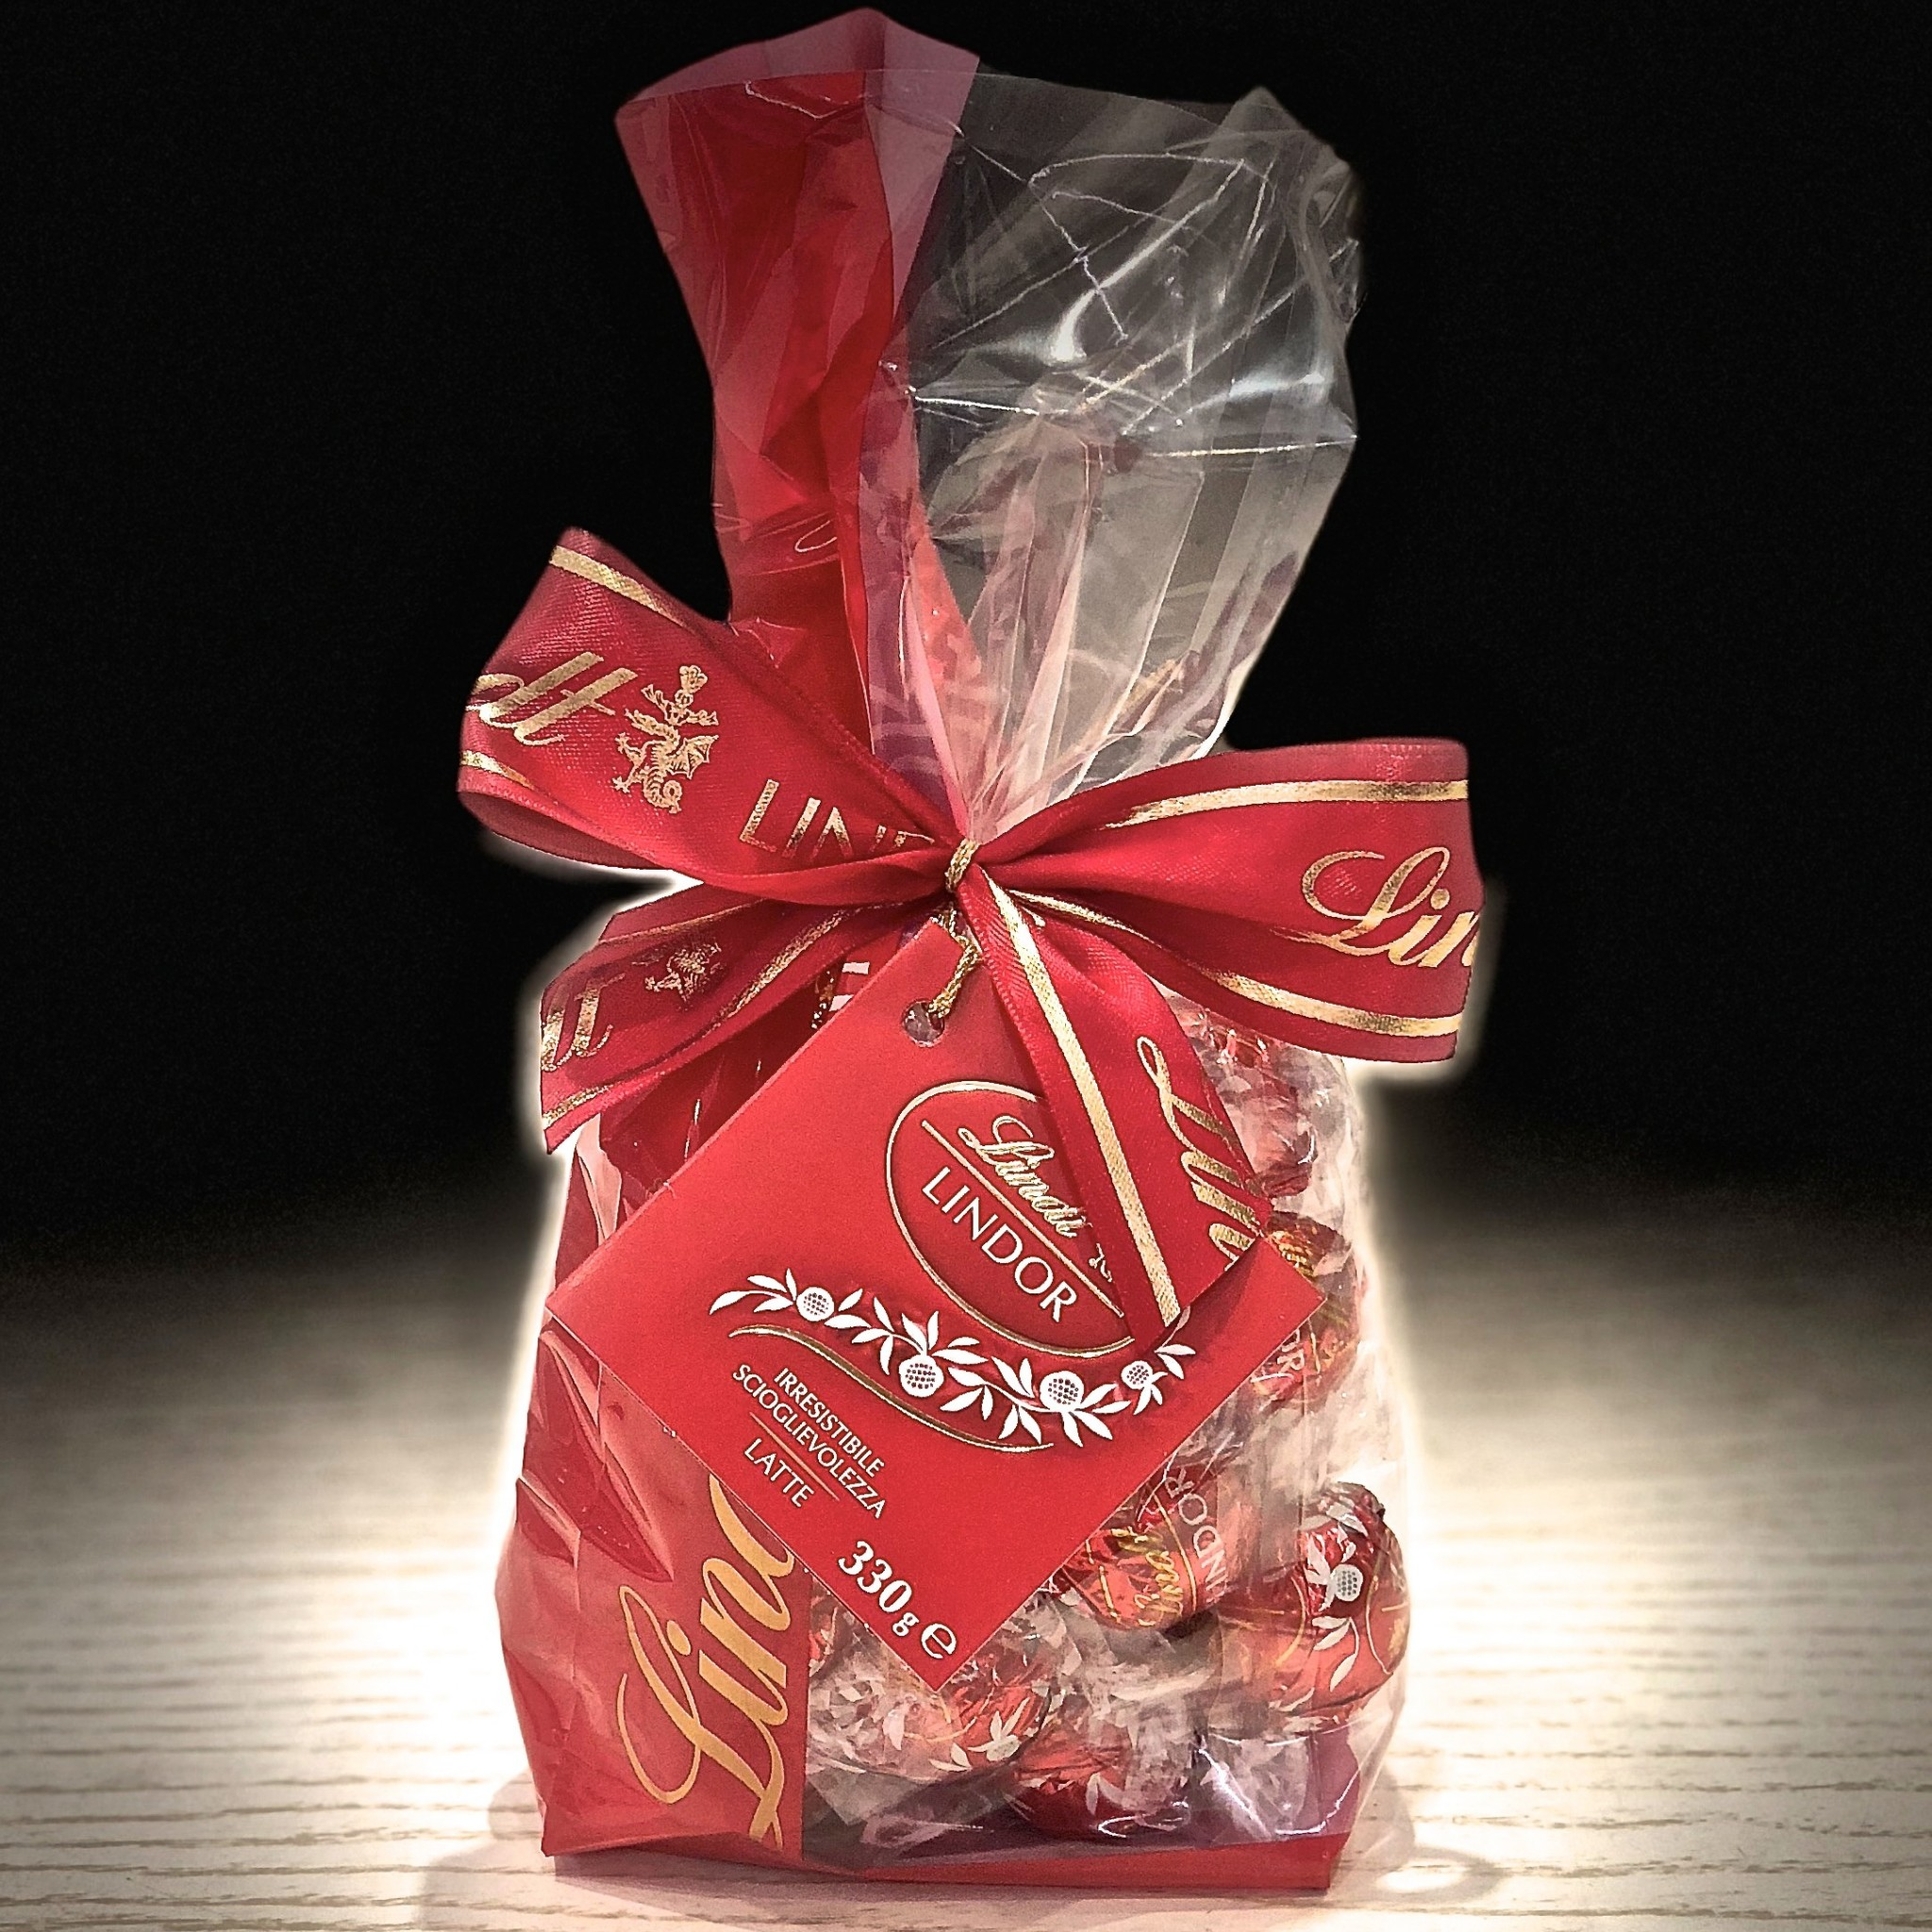 Shop Online Gift Boxes Of Chocolates Lindor Lindt Sprngli At The Dark Chocolate Milk Sachet 330g